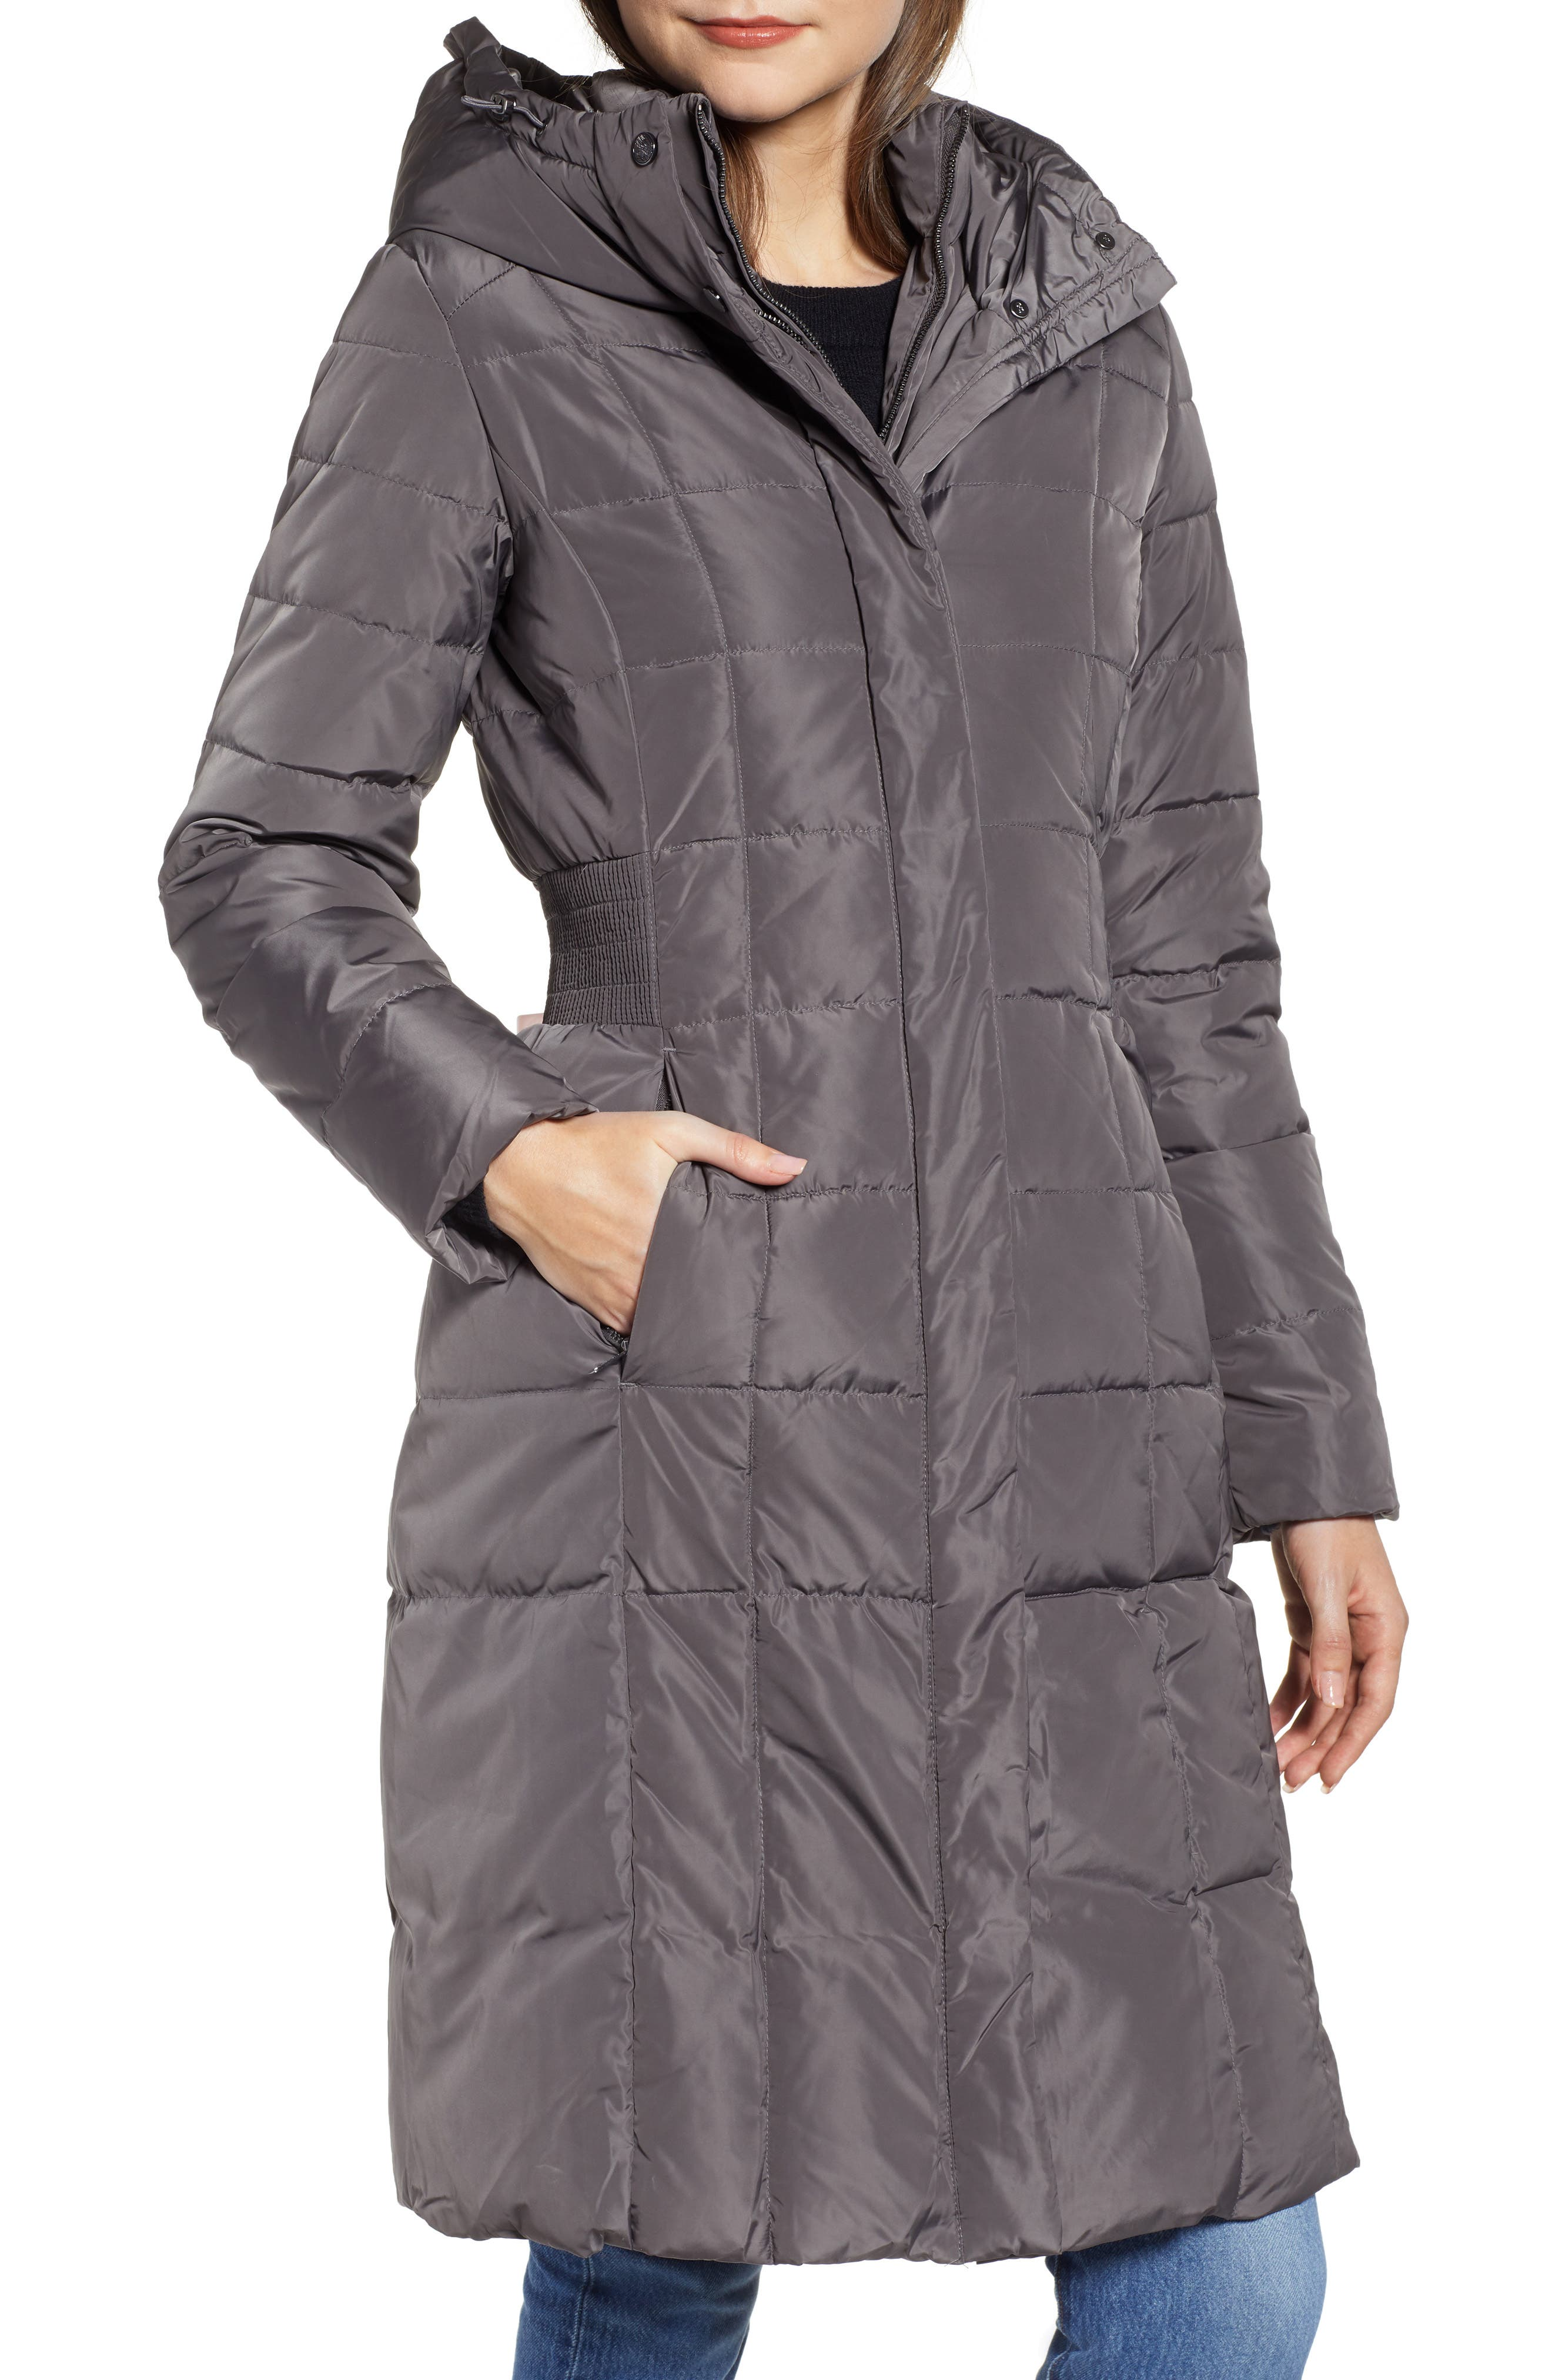 COLE HAAN SIGNATURE, Cole Haan Bib Insert Down & Feather Fill Coat, Alternate thumbnail 5, color, 024